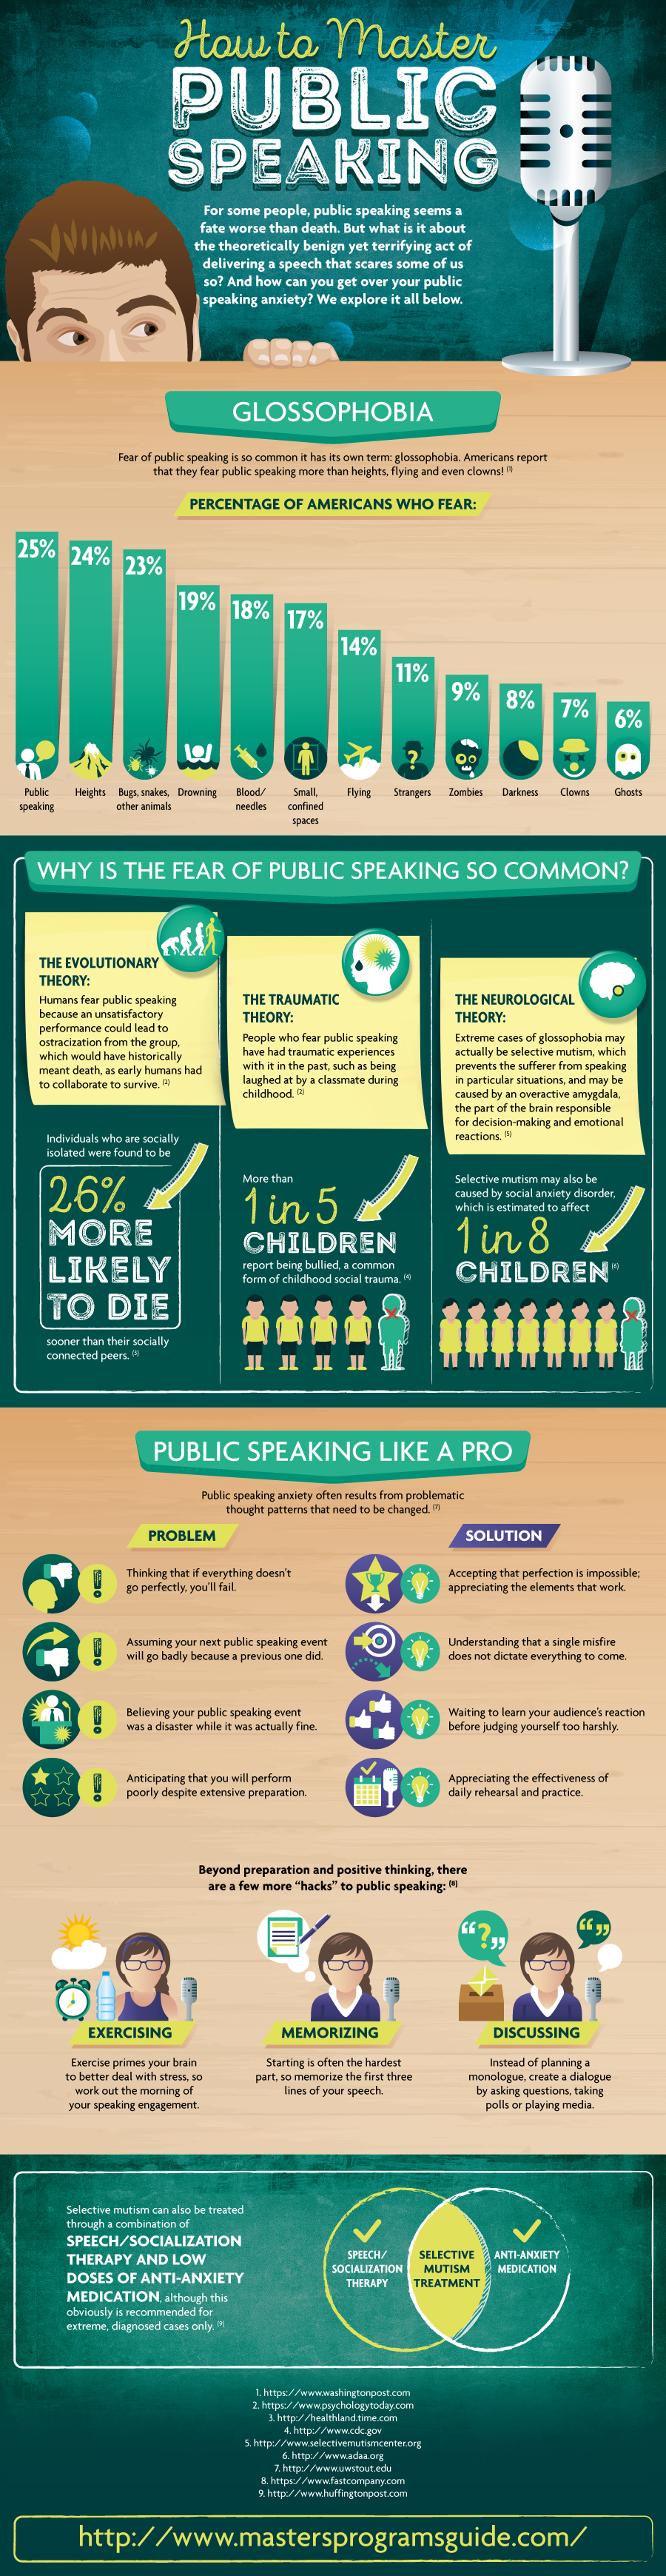 How to Master Public Speaking Infographic | Teamwork.com The High Performance Blog